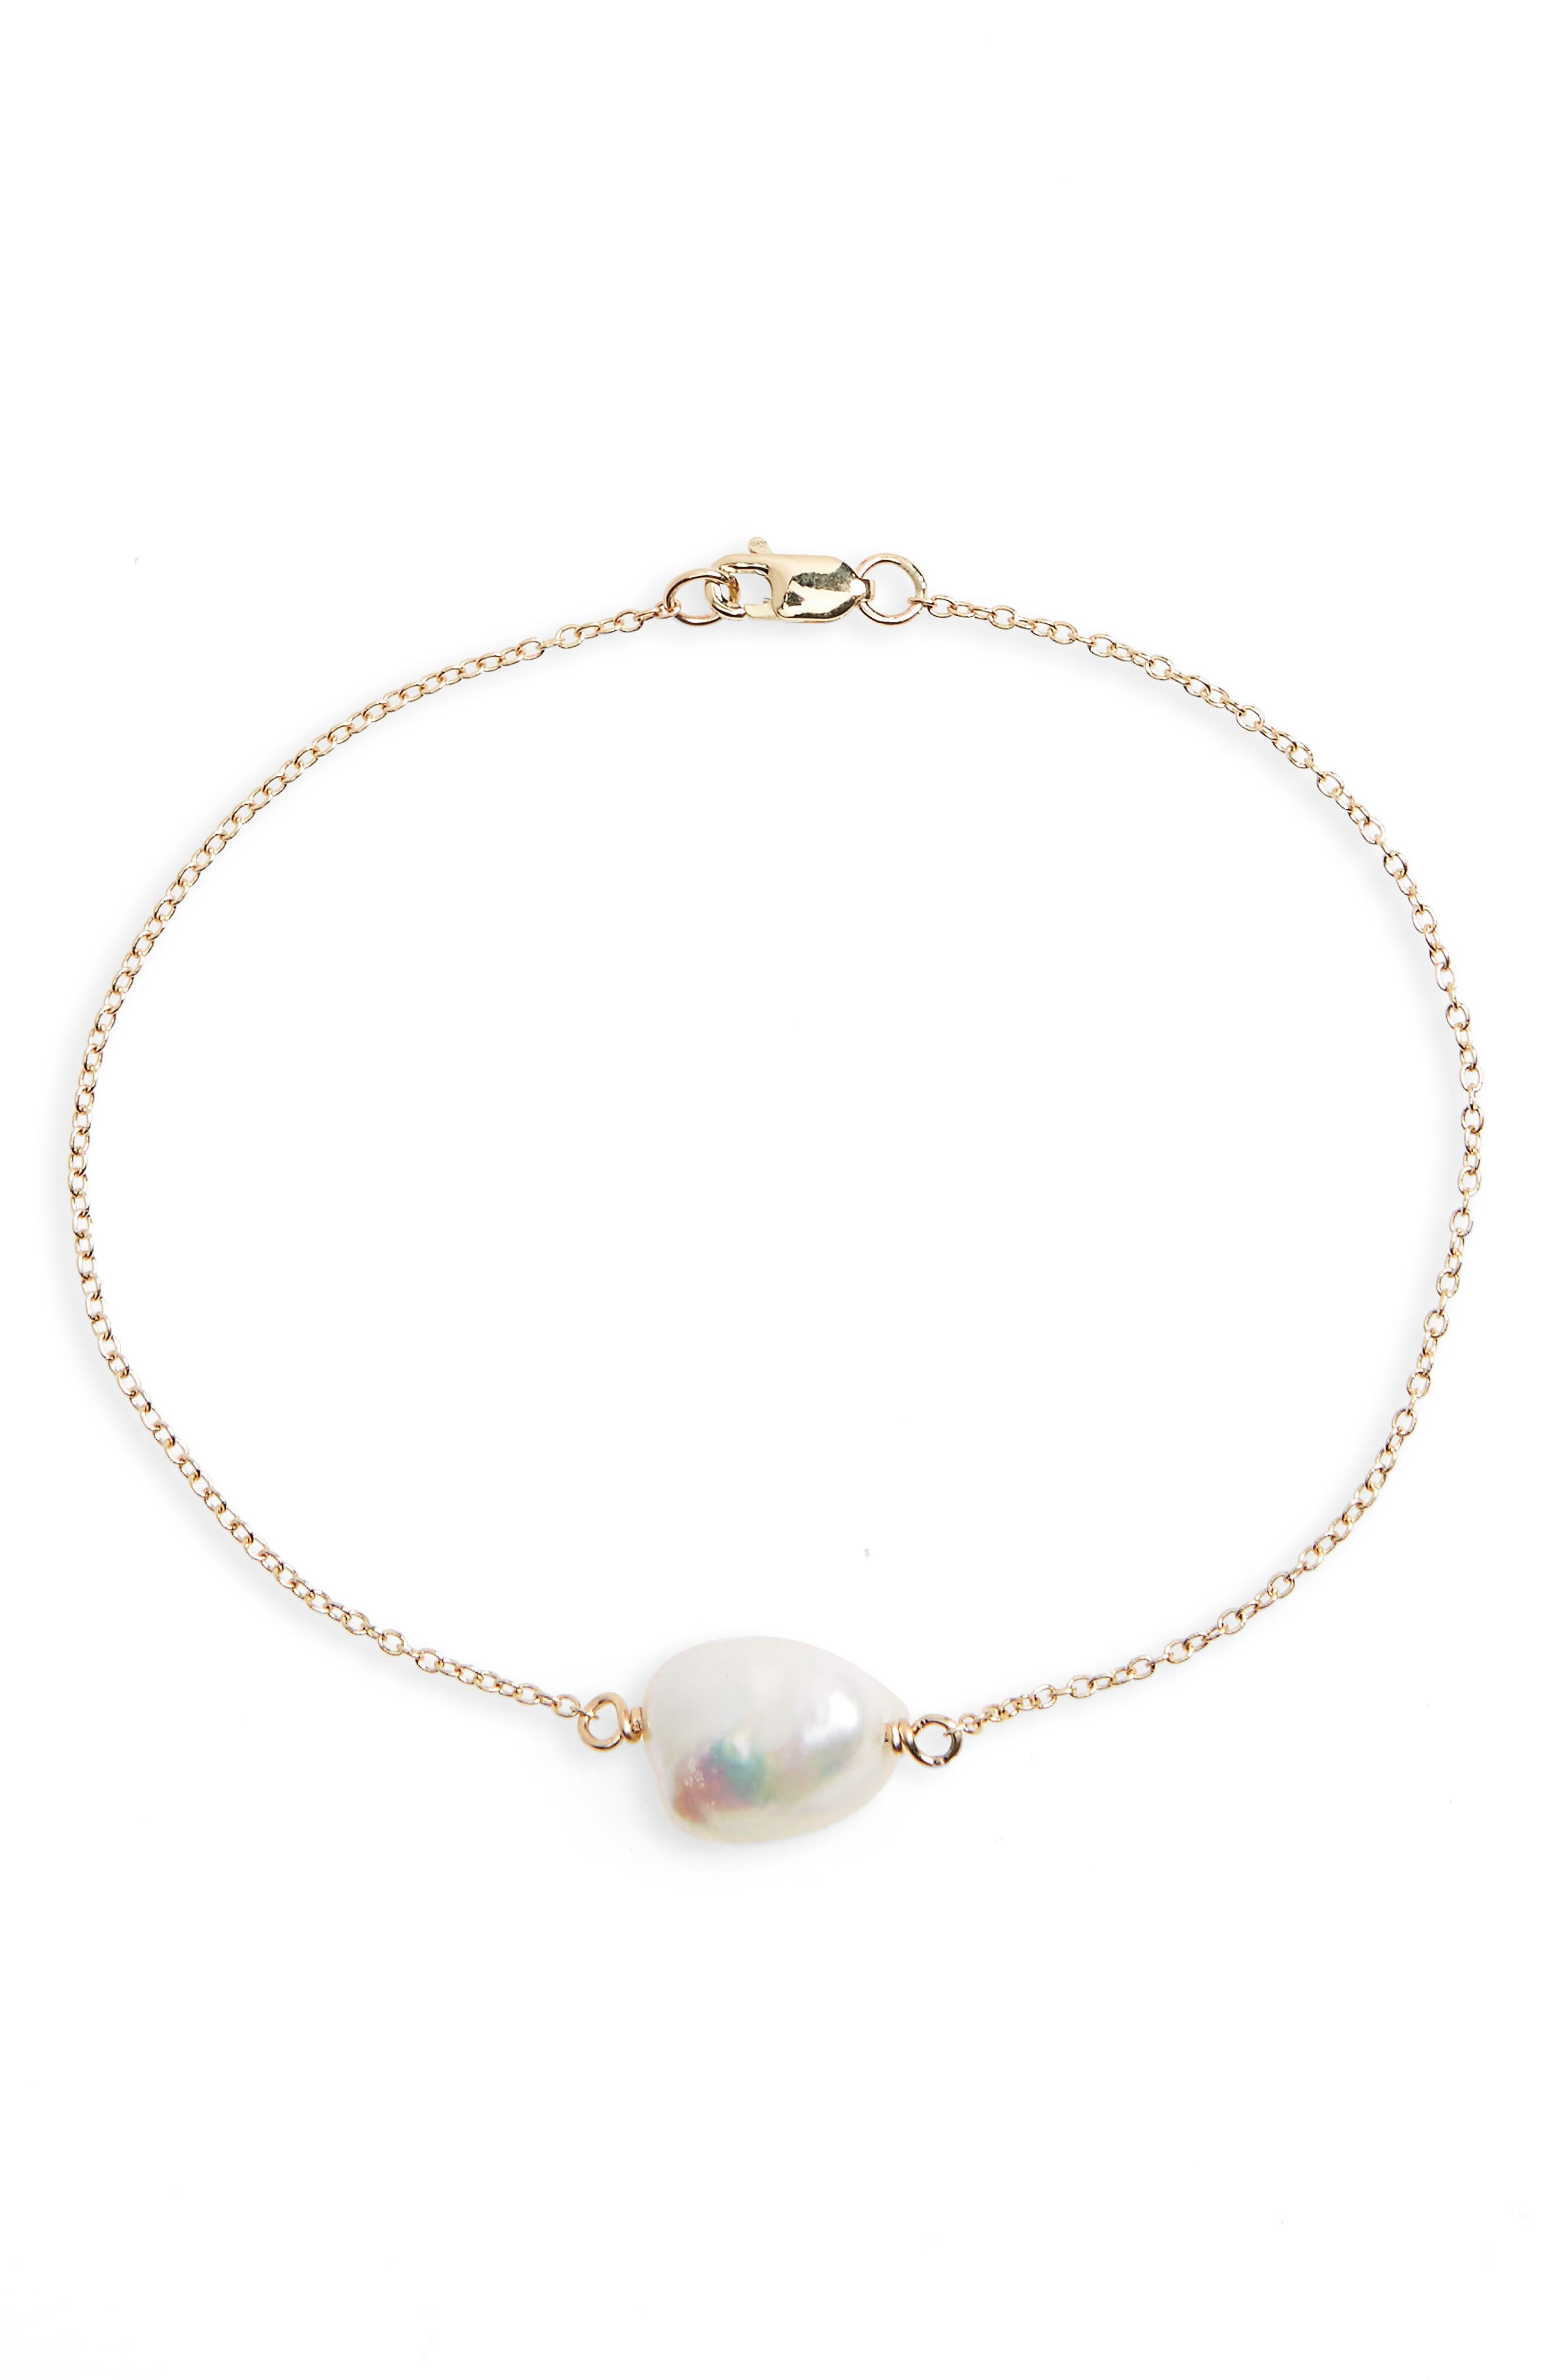 Keshi Cultured Pearl Bracelet,                         Main,                         color, 14K GOLD/ PEARL